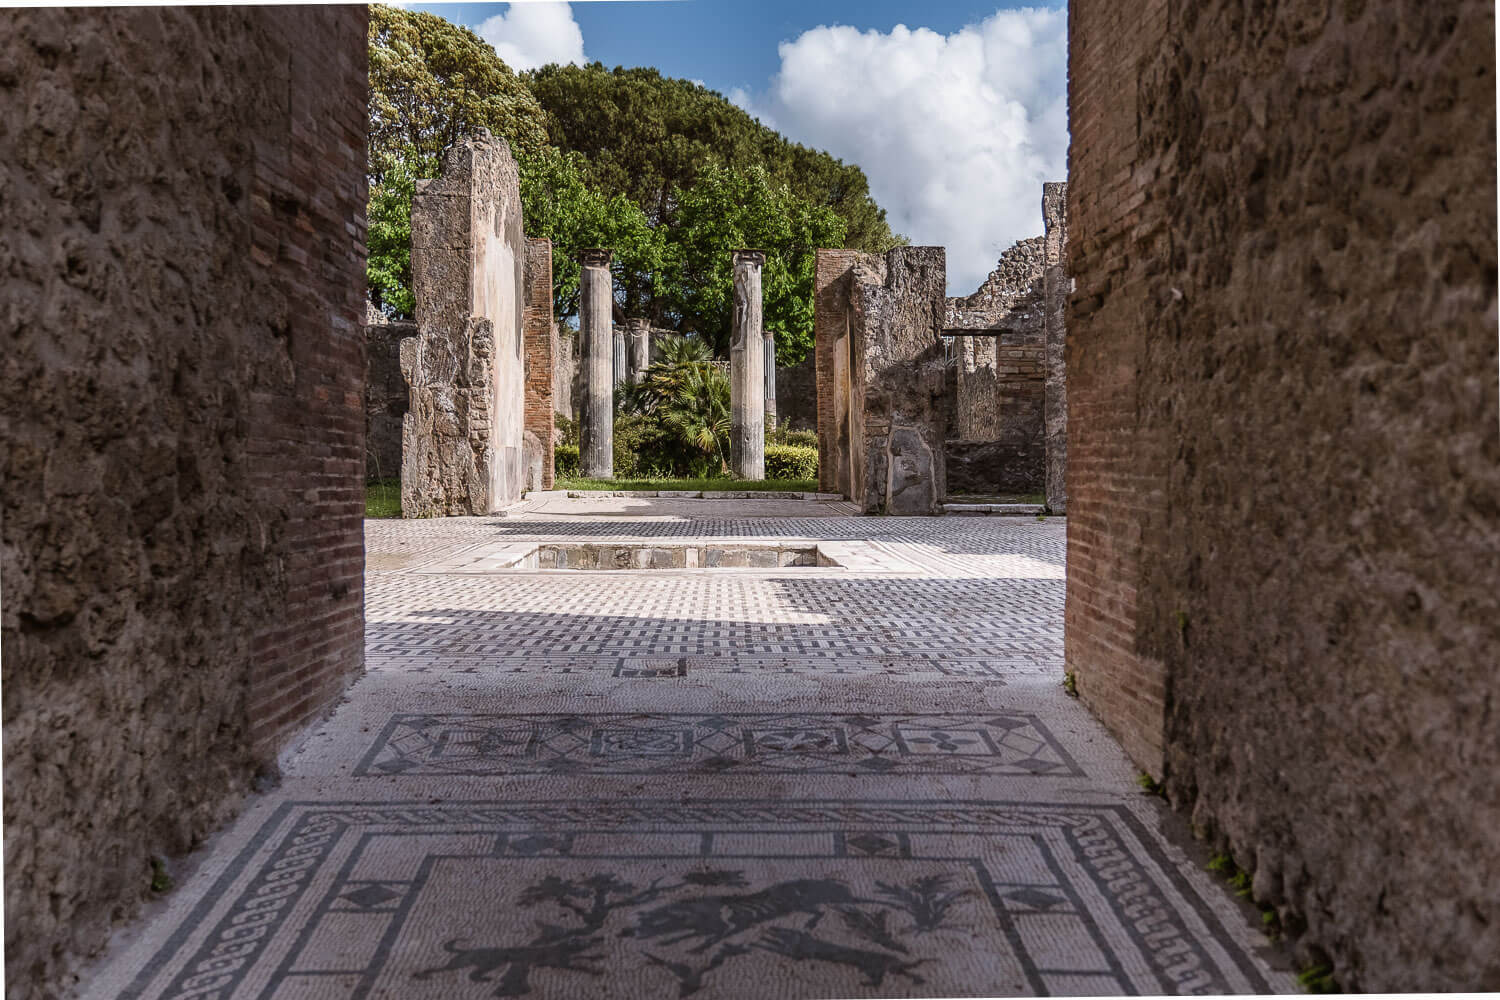 """Mosaic atrium of an aristocratic house in Pompeii, Italy.. Travel photography and guide by © Natasha Lequepeys for """"And Then I Met Yoko"""". #pompeii #italy #fujifilm #travelphotography"""